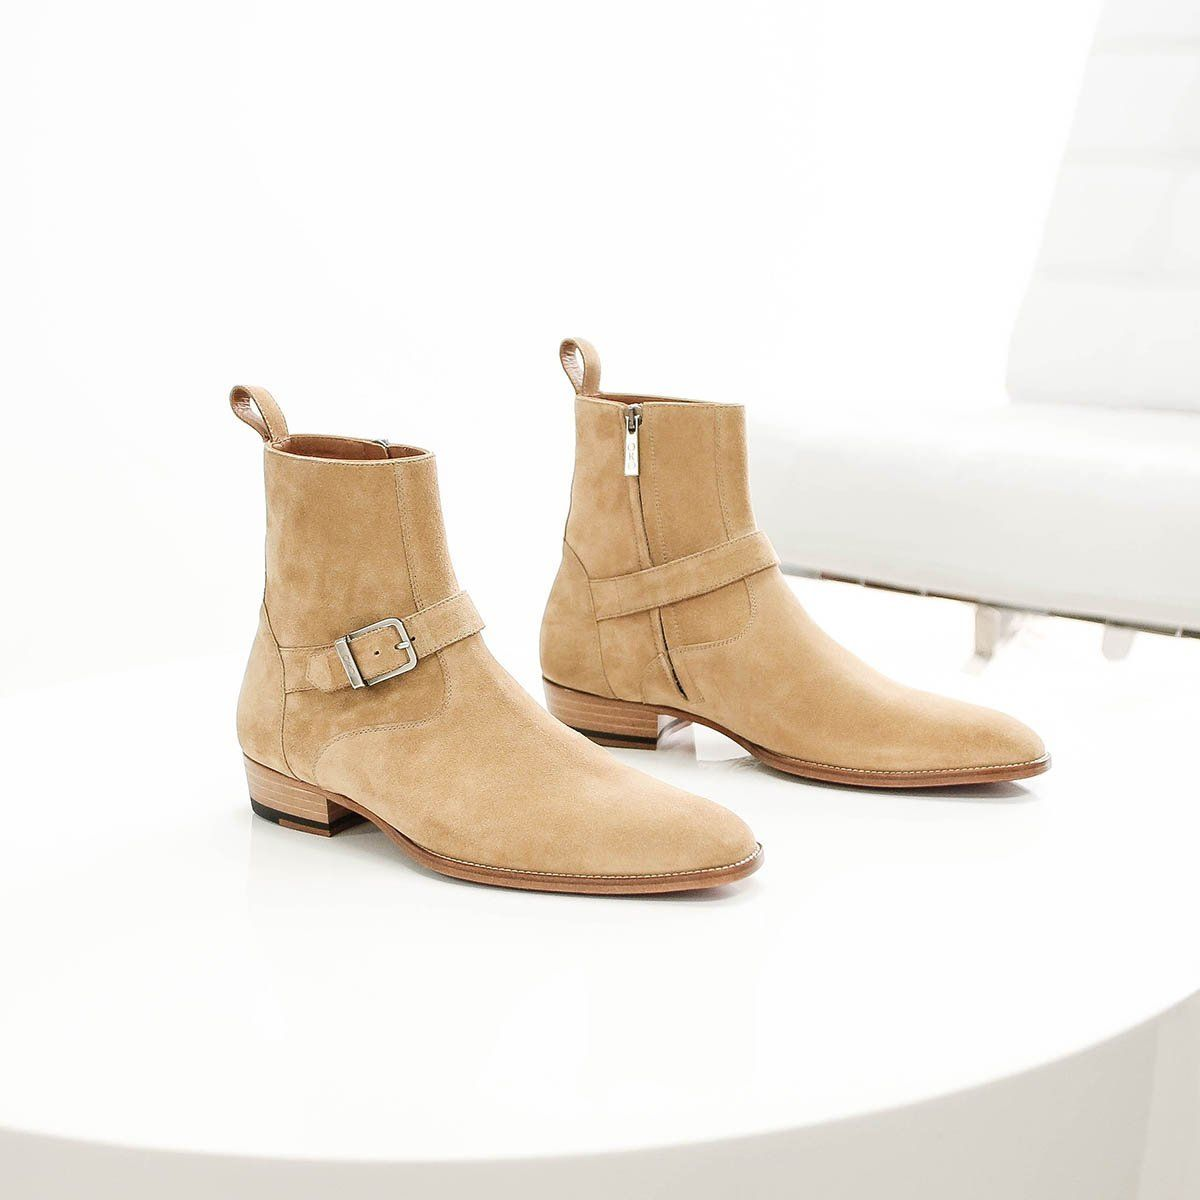 NEW HANDMADE THE MADRID STRAP BOOTS MENS STYLE